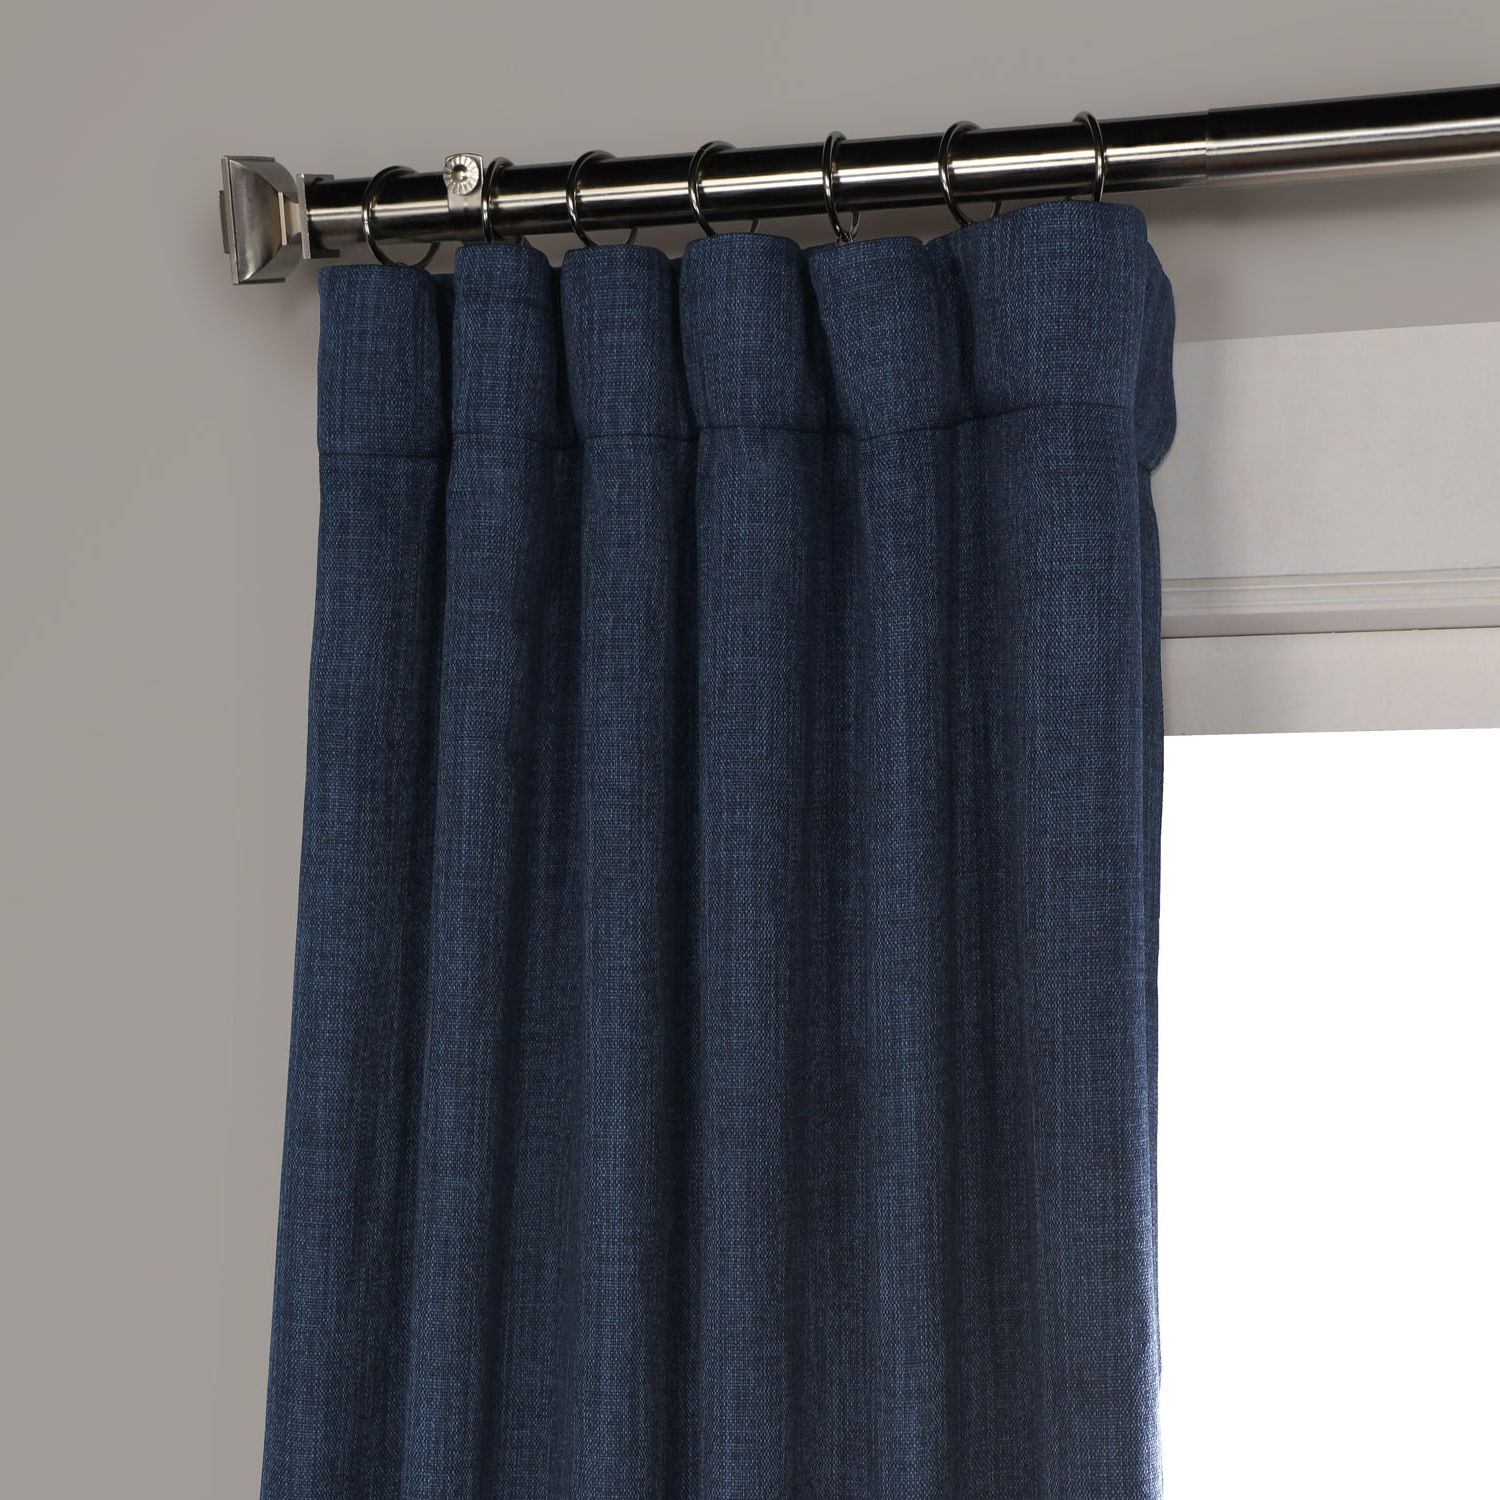 Newest Faux Linen Extra Wide Blackout Curtains With Indigo Faux Linen Blackout Curtain (View 9 of 21)